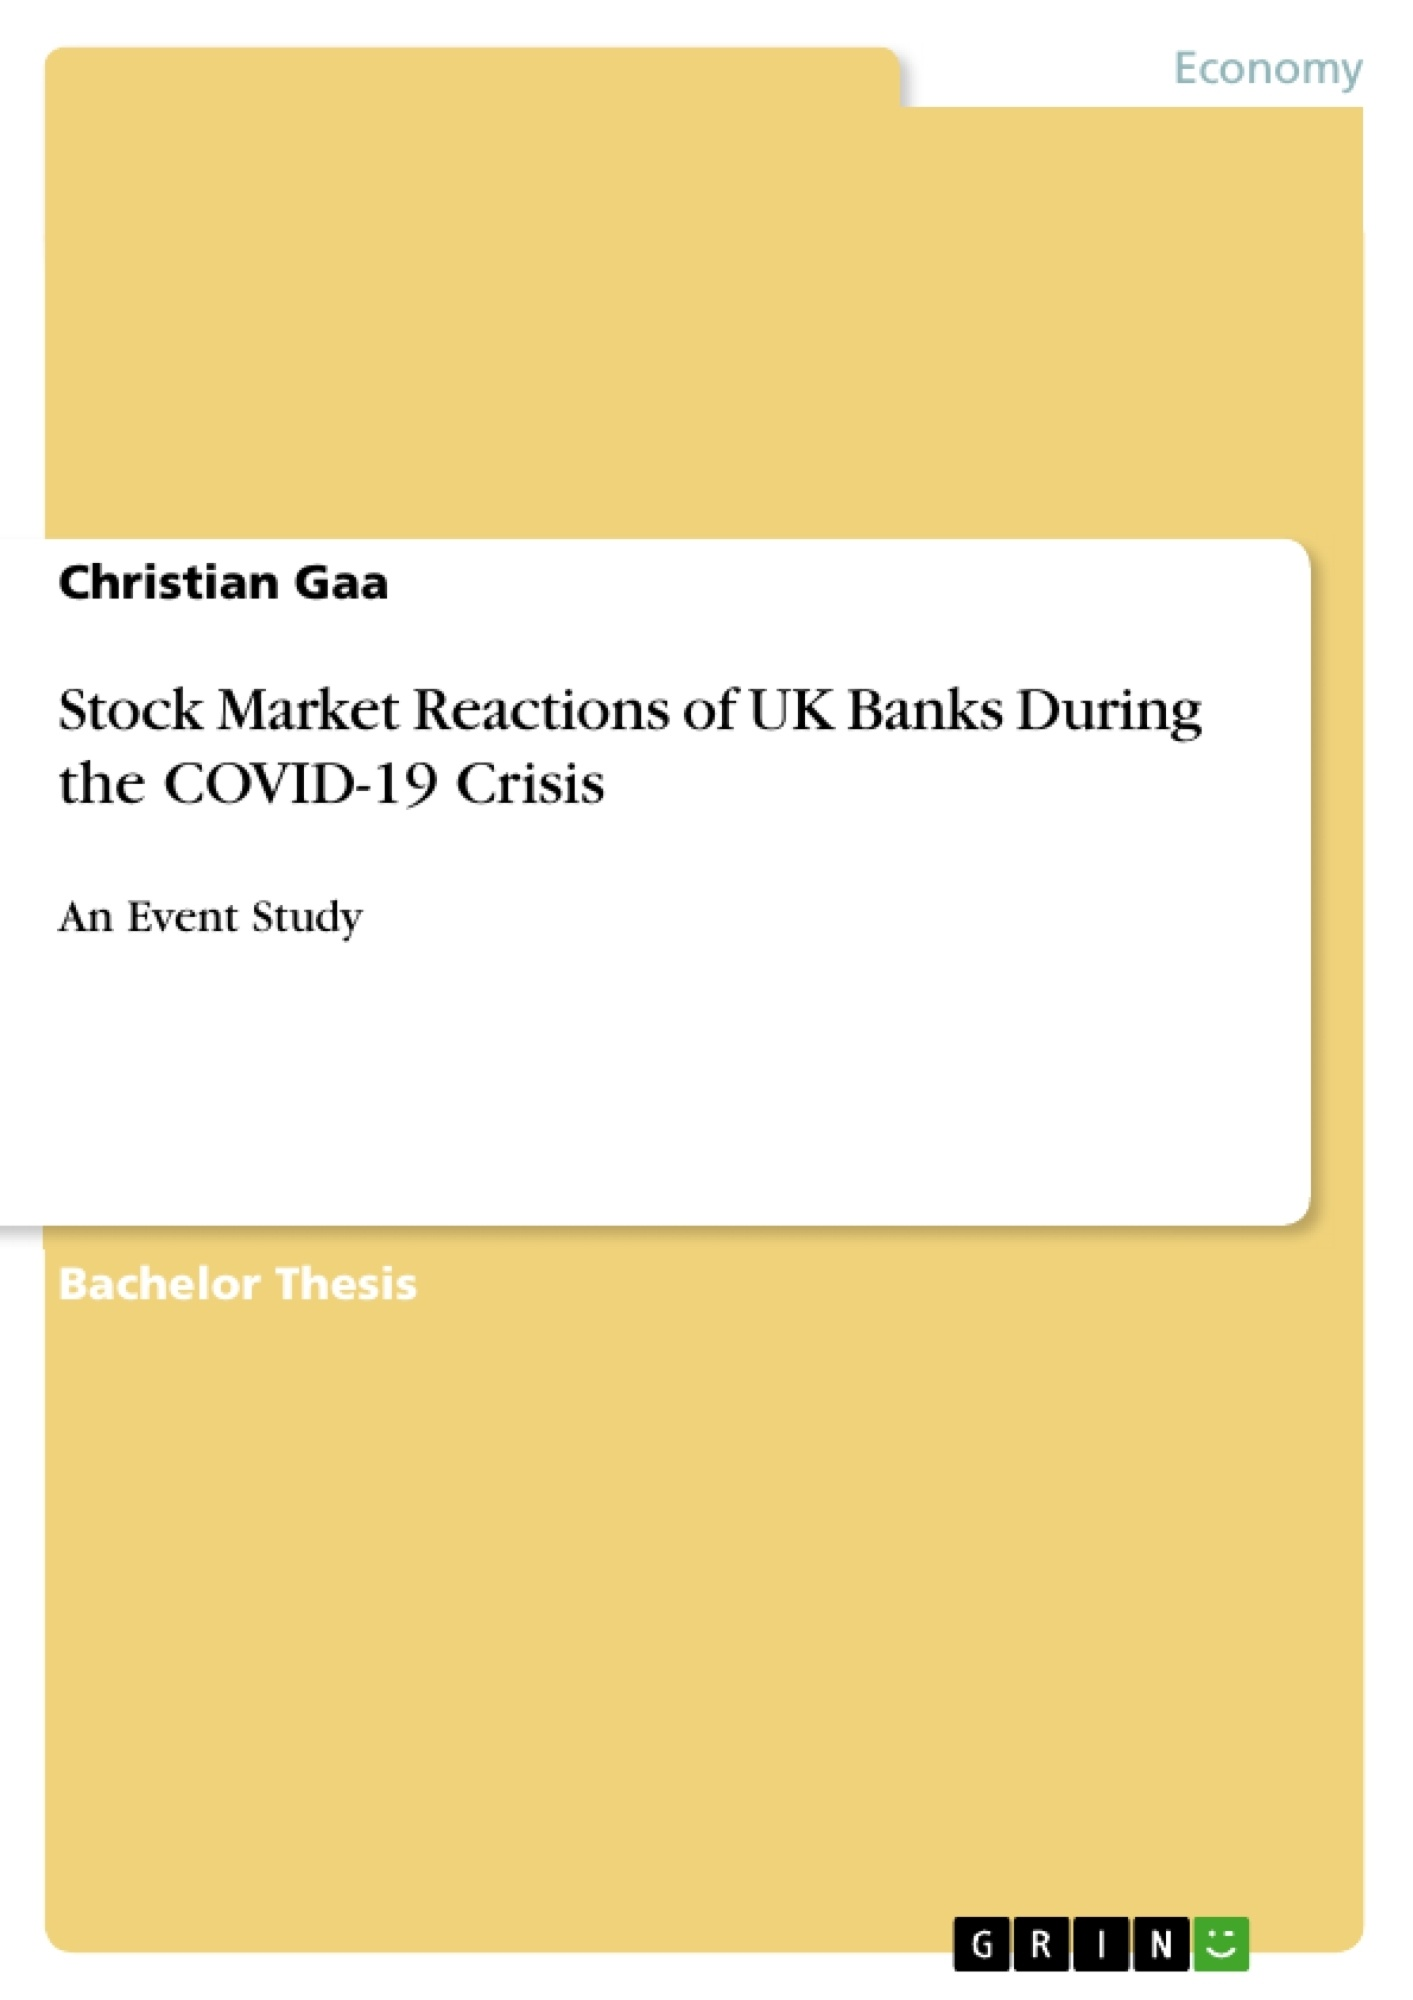 Title: Stock Market Reactions of UK Banks During the COVID-19 Crisis